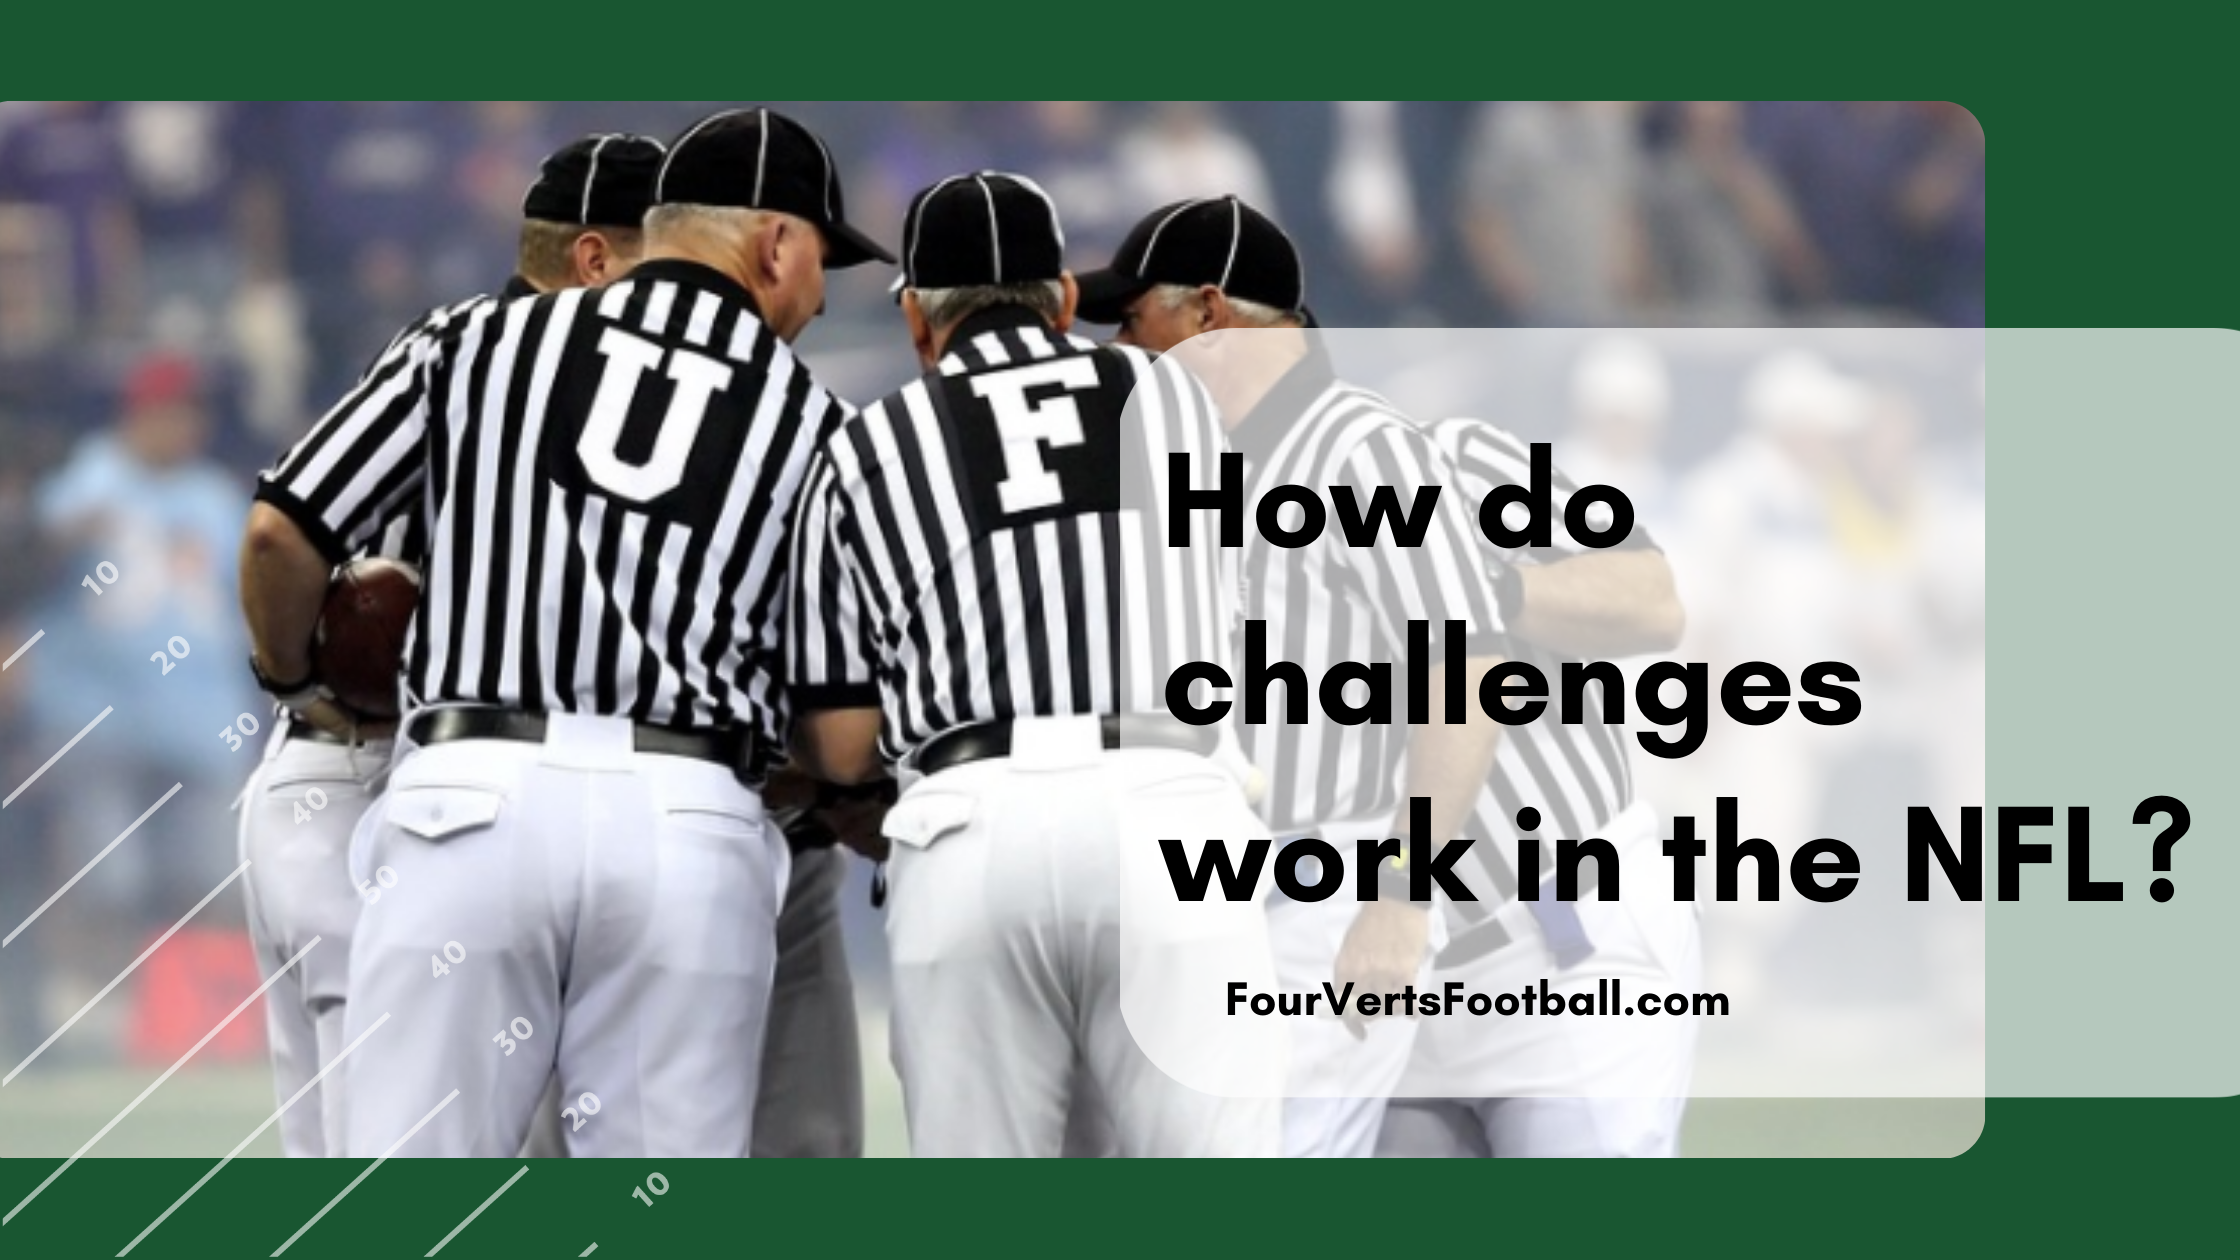 how do challenges work in football